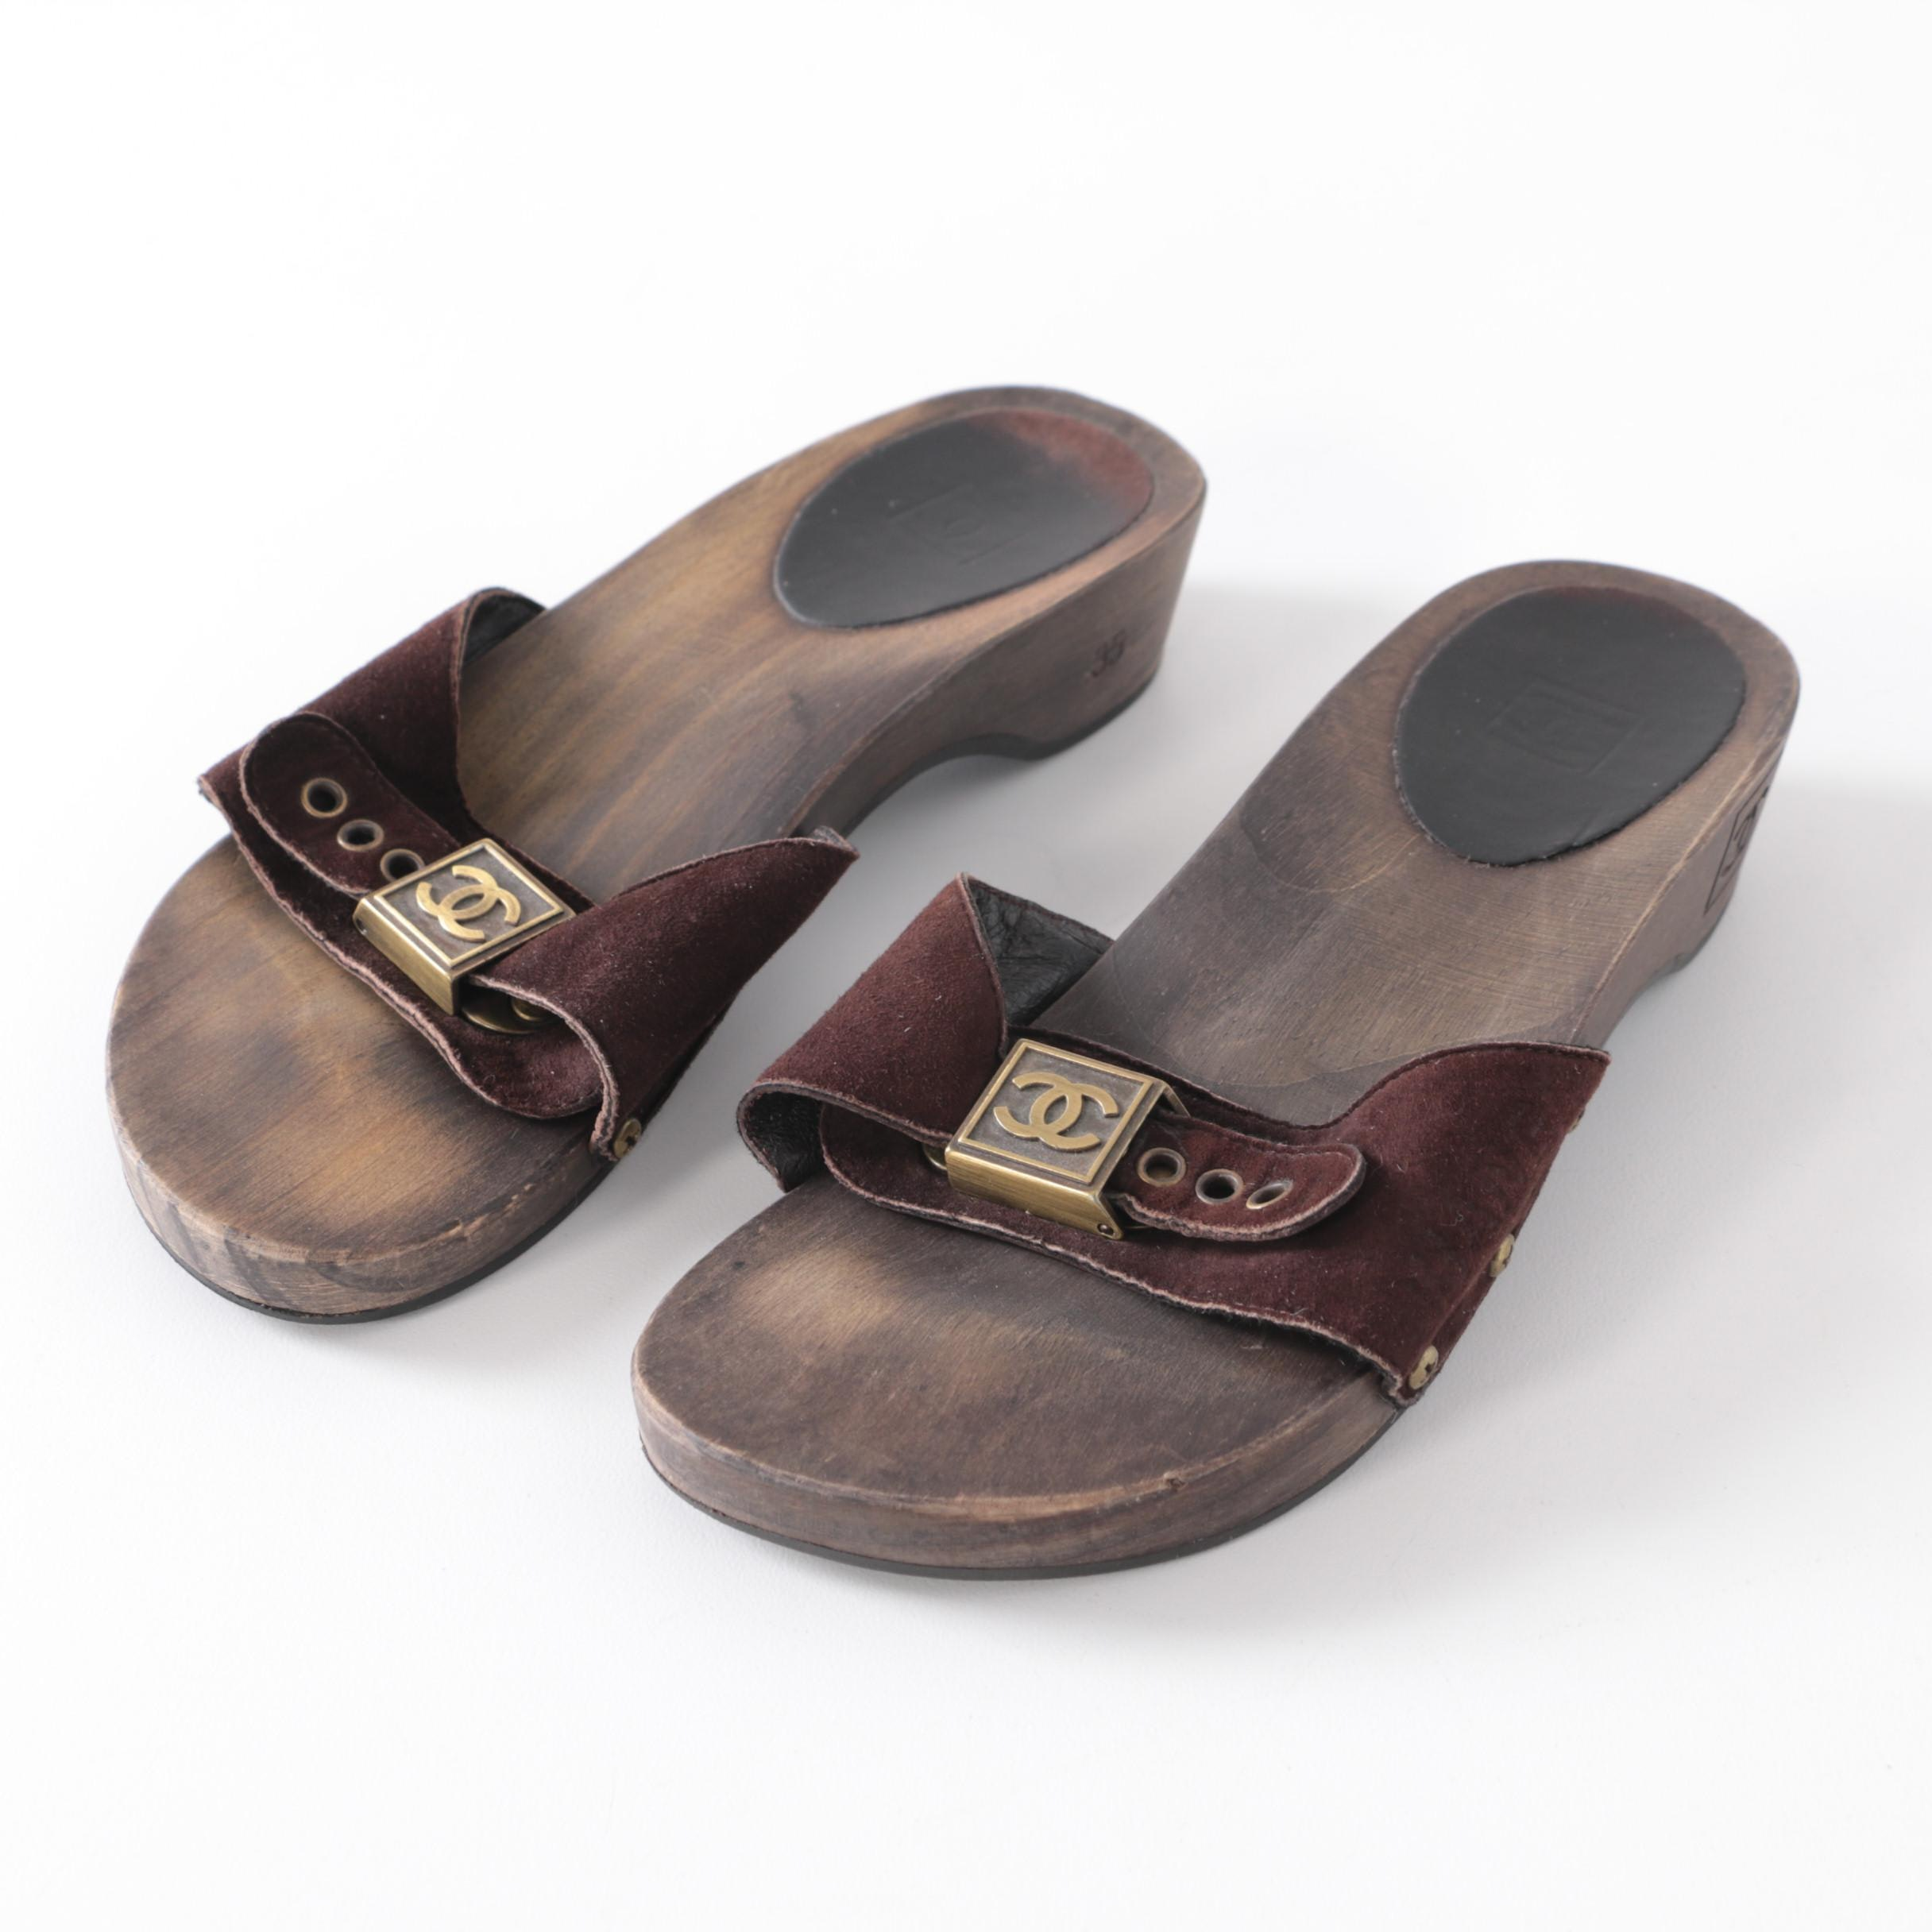 Women's Chanel Dark Brown Suede Slide Sandals